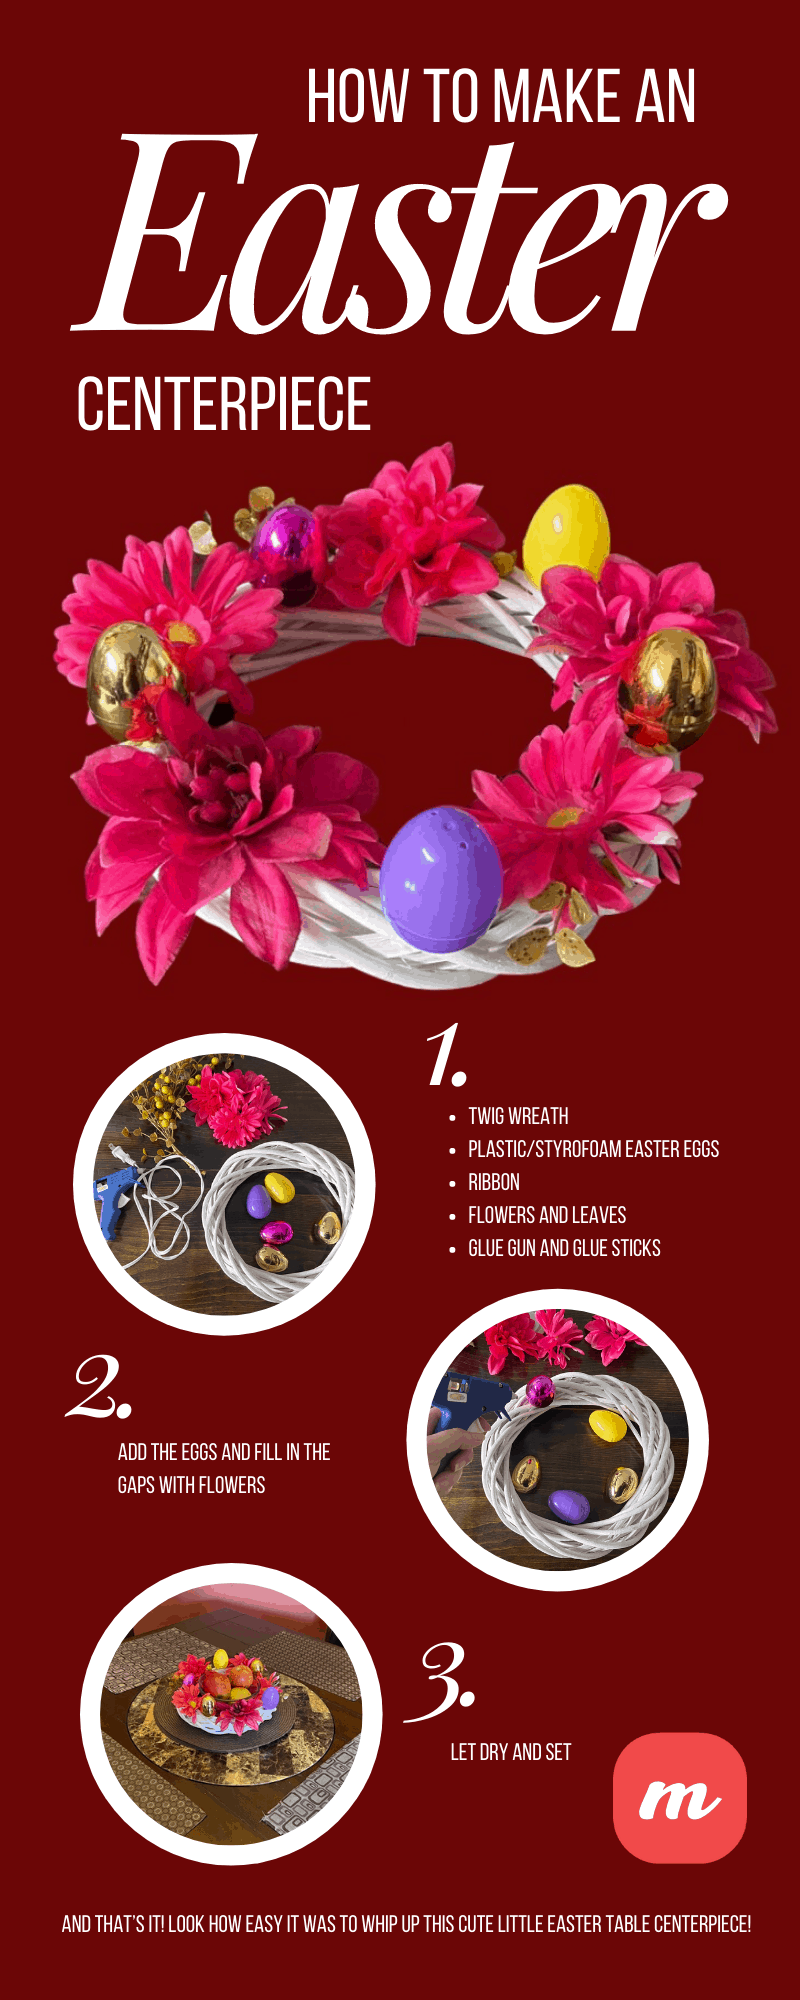 7 Awesome Easter Chick Craft Place Holders You Can Make at Home - Infographic